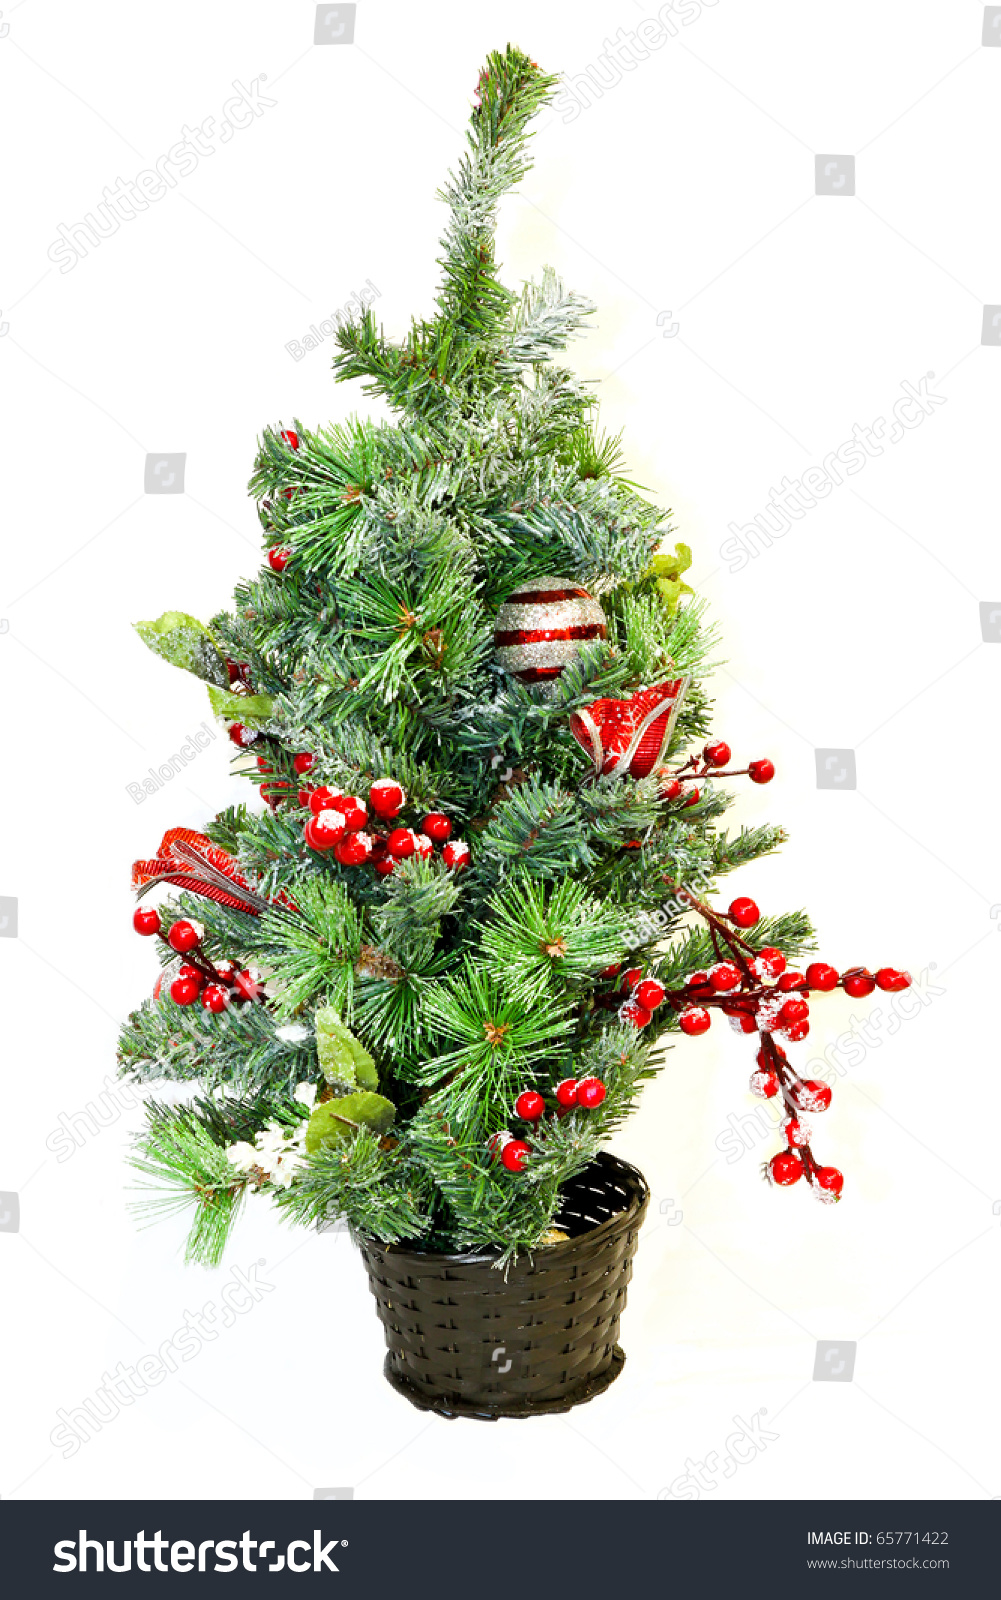 Small Tabletop Decorated Christmas Tree In Pot Stock Photo